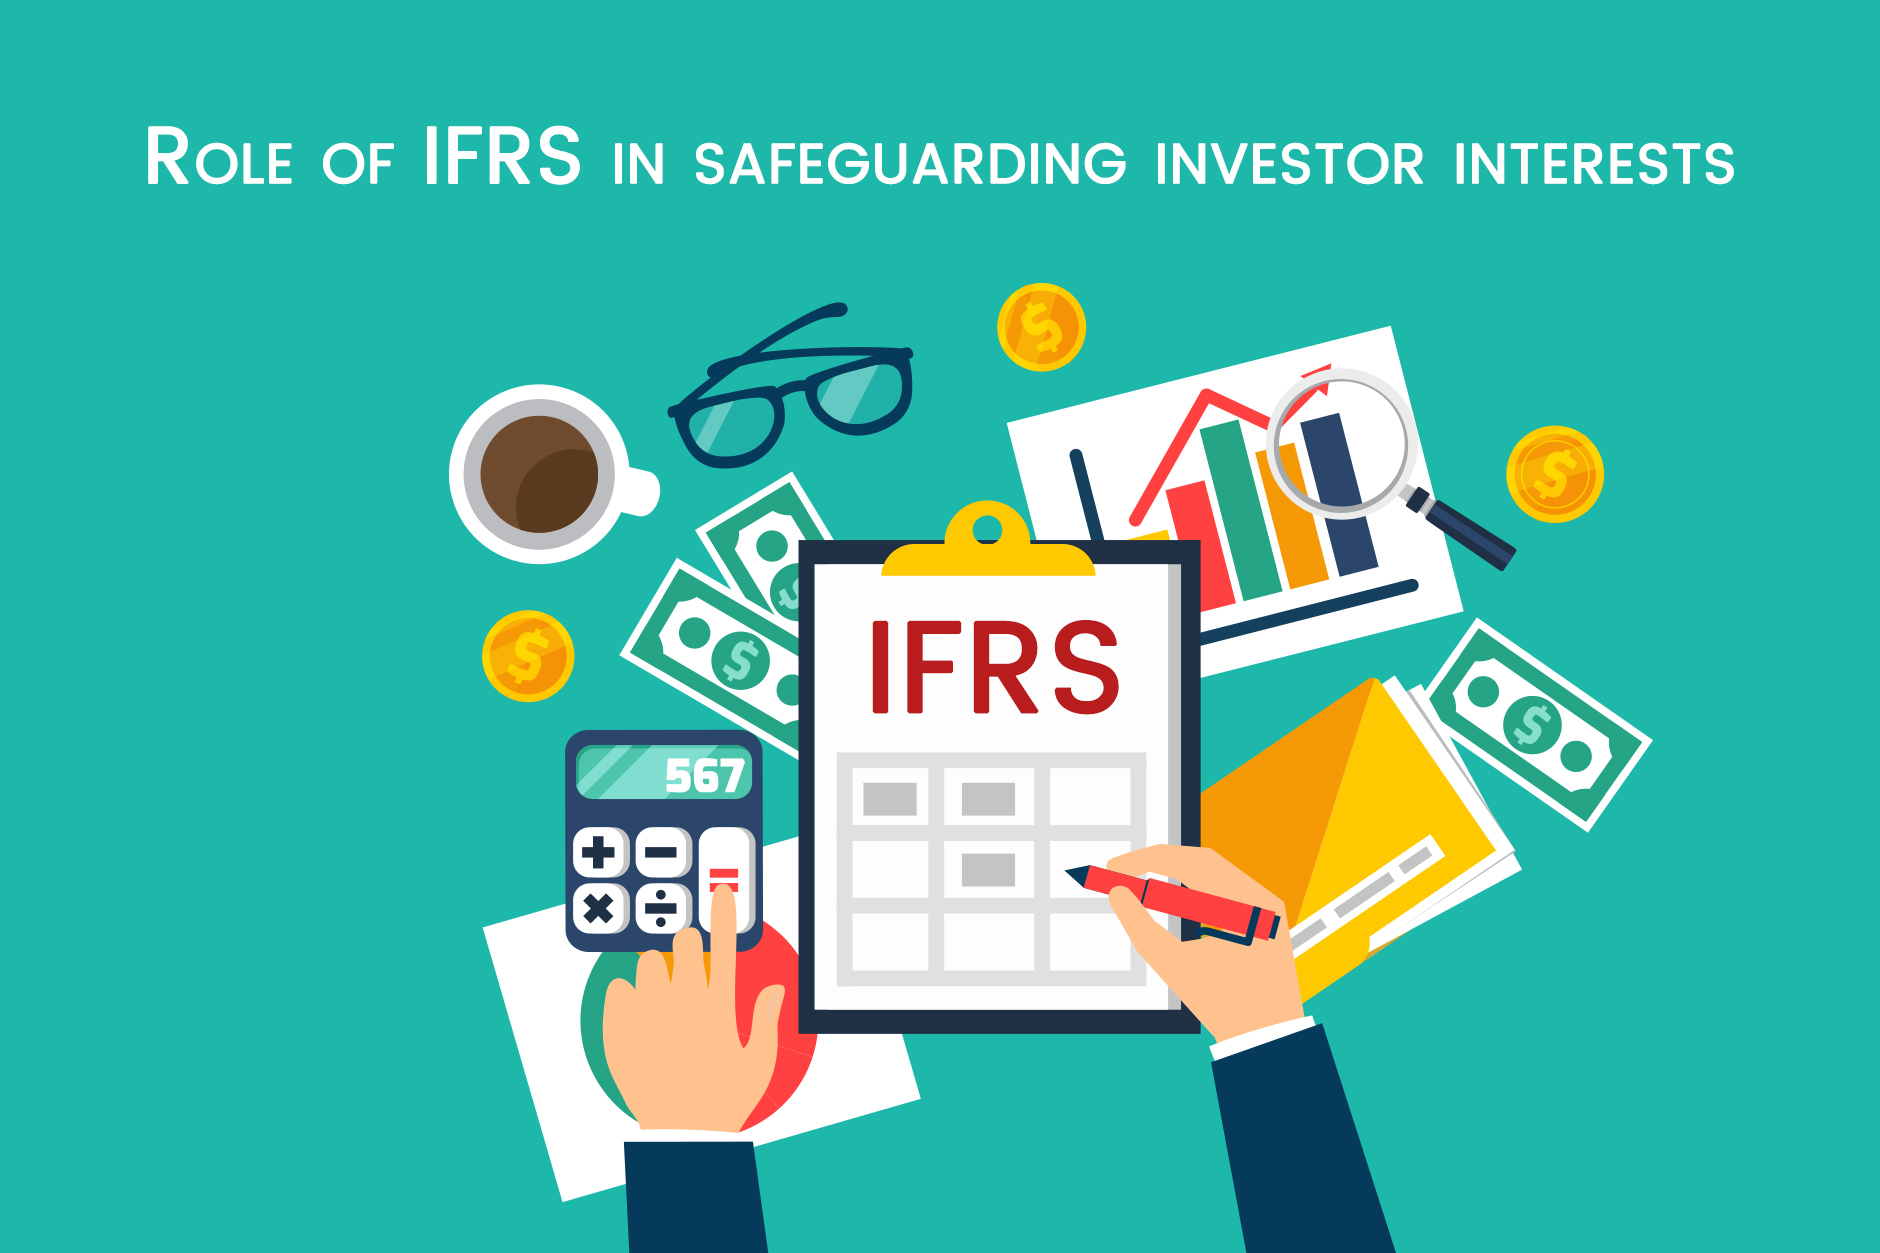 Role of IFRS in safeguarding investor interests